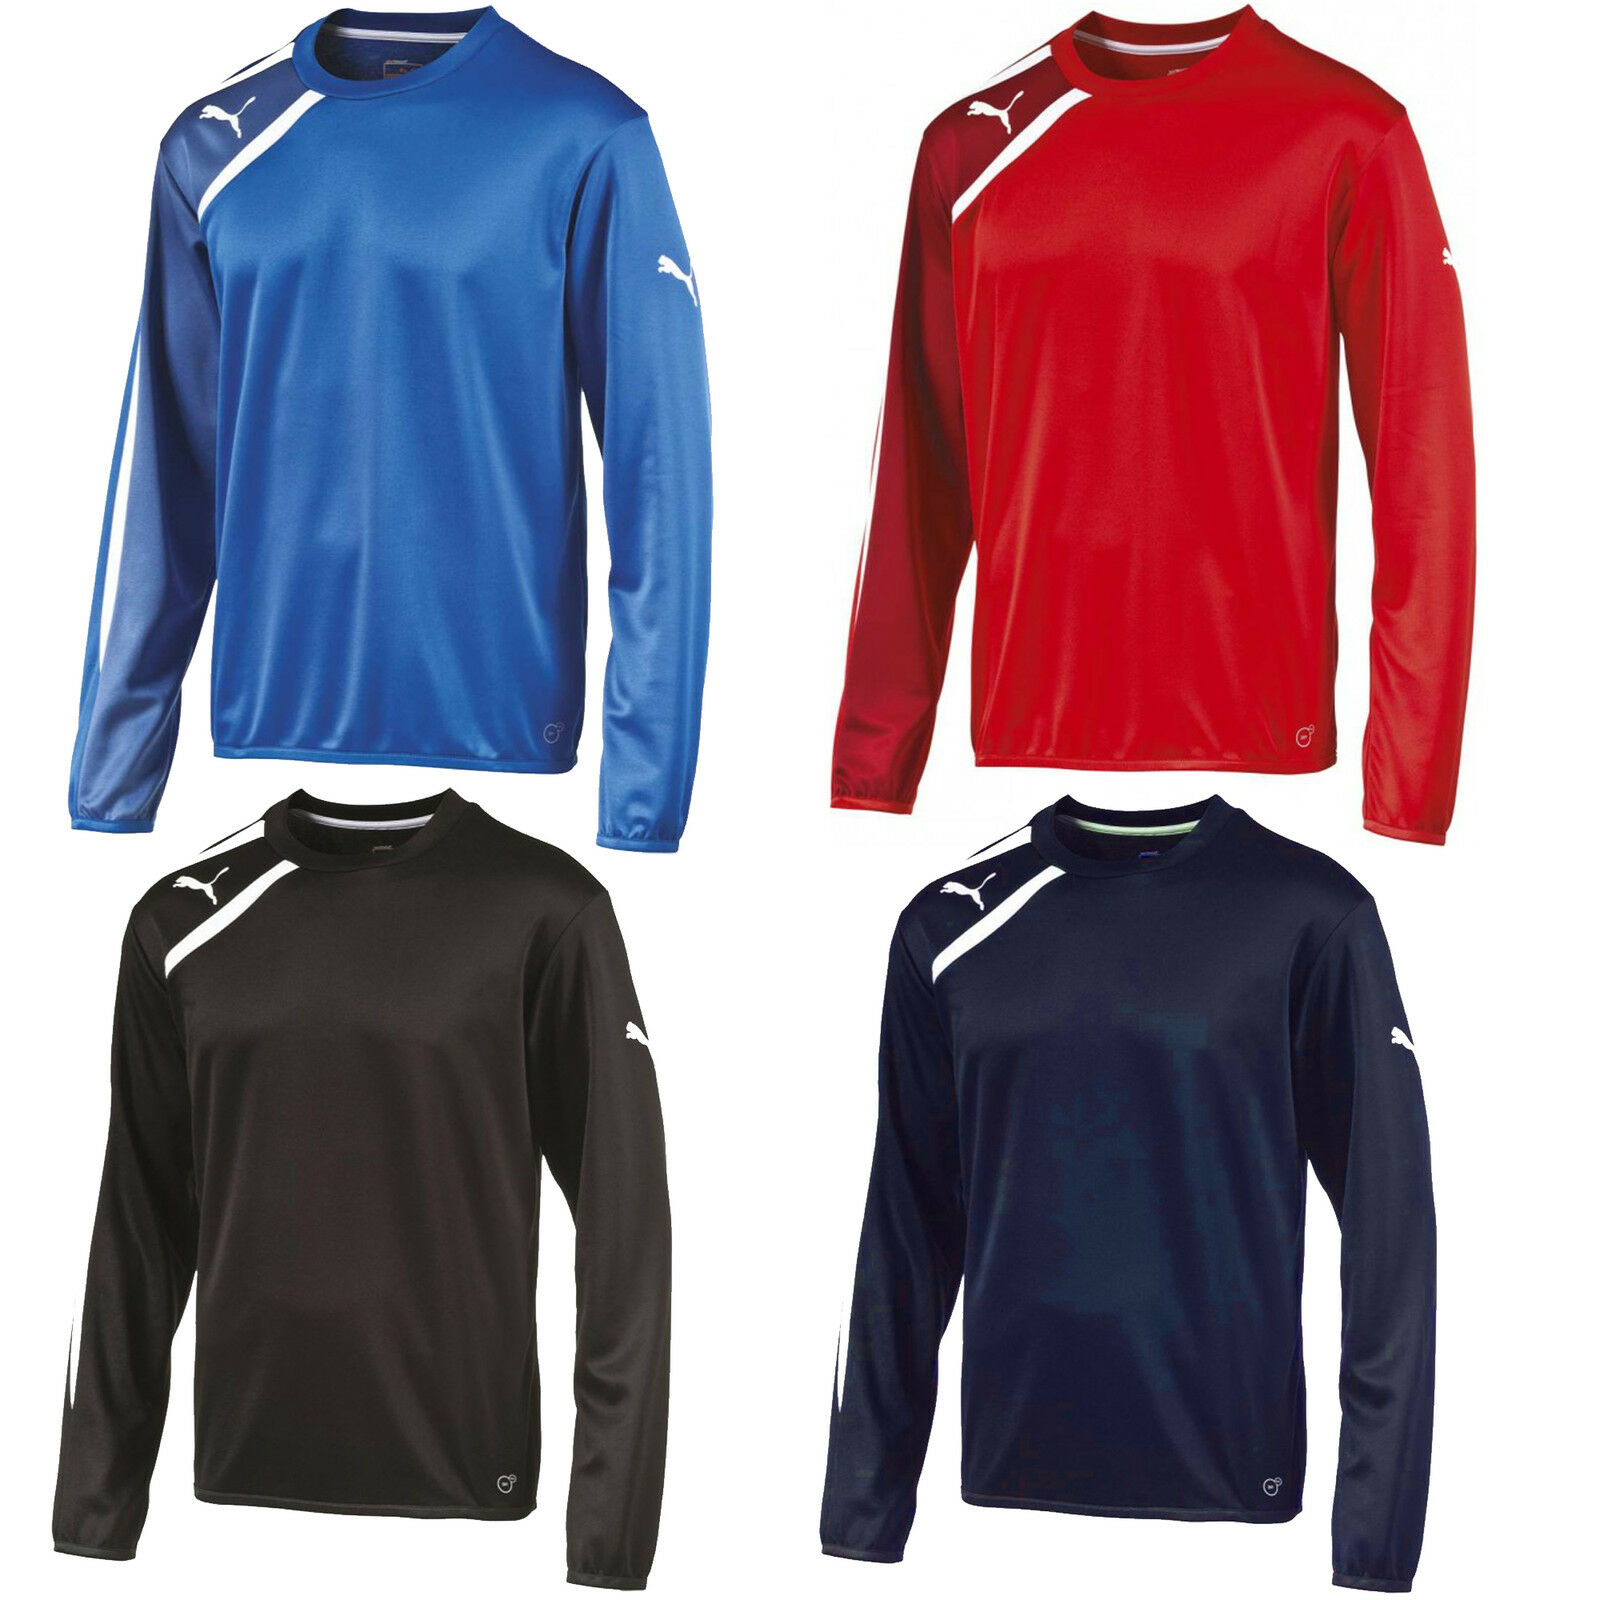 about Training Range Red Football Top Blue Details Puma